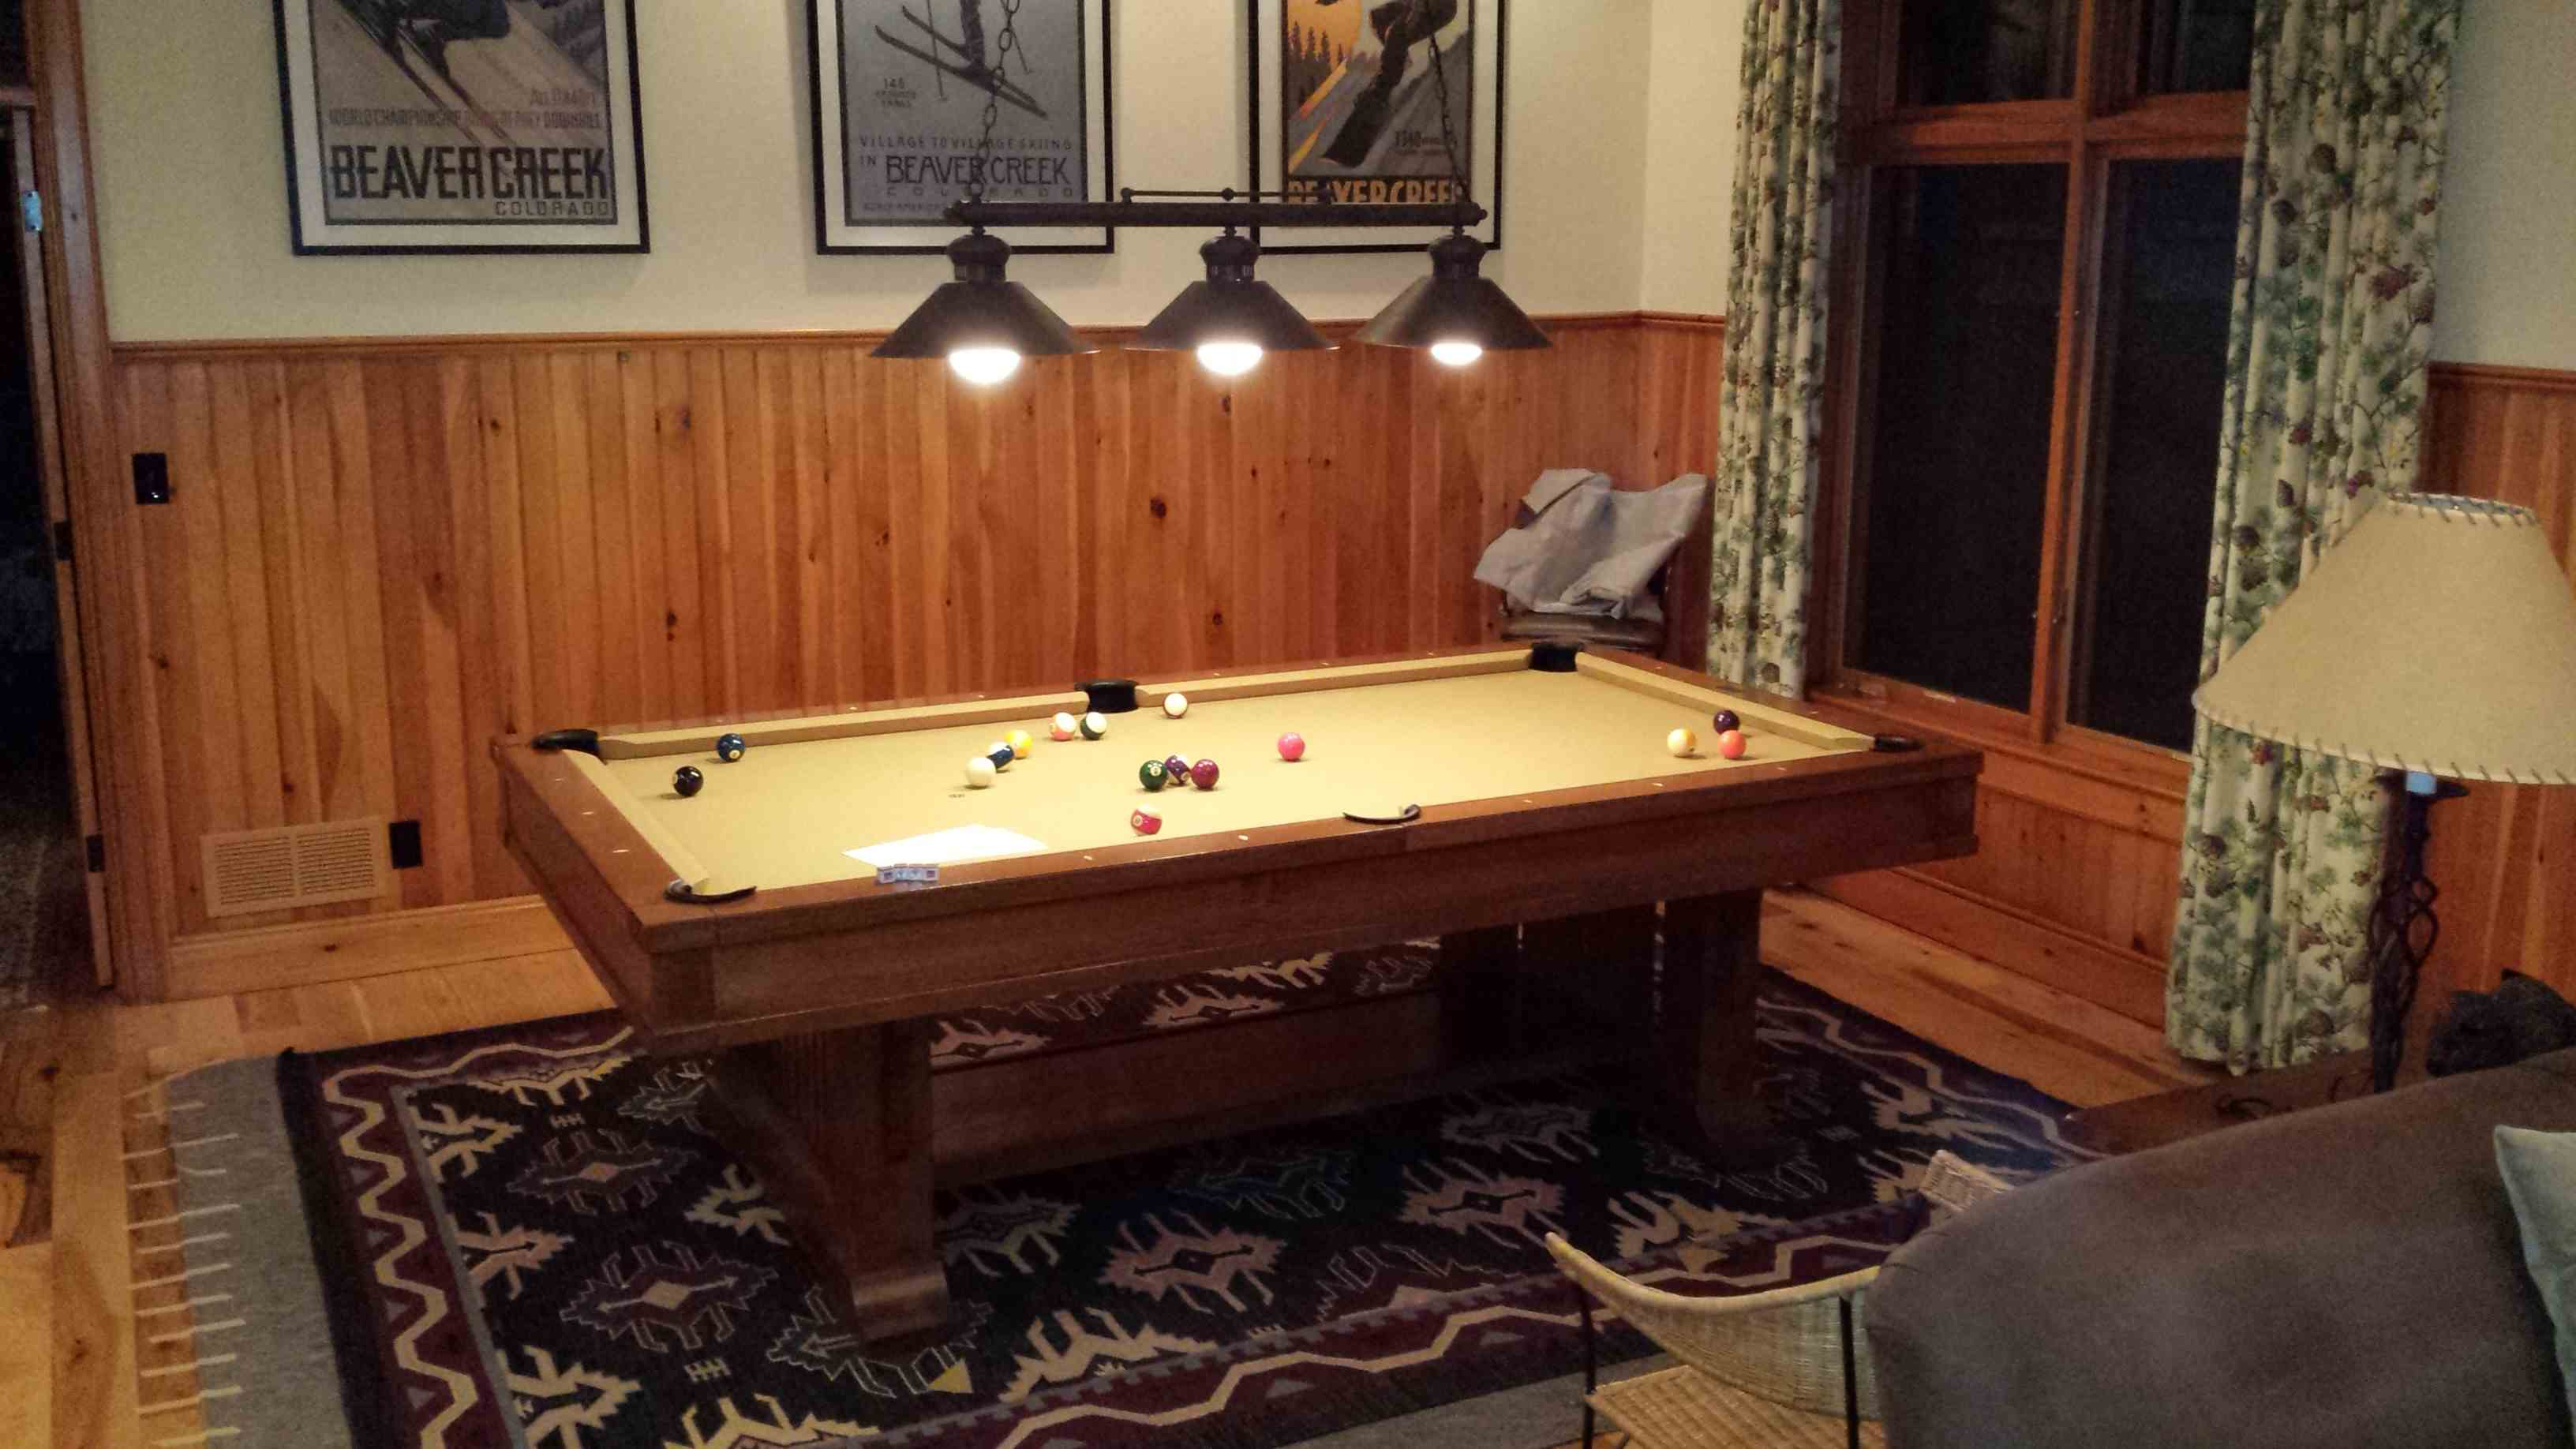 Brunswick Pool Table Assembly With New Championship Pool Table Felt - New brunswick pool table